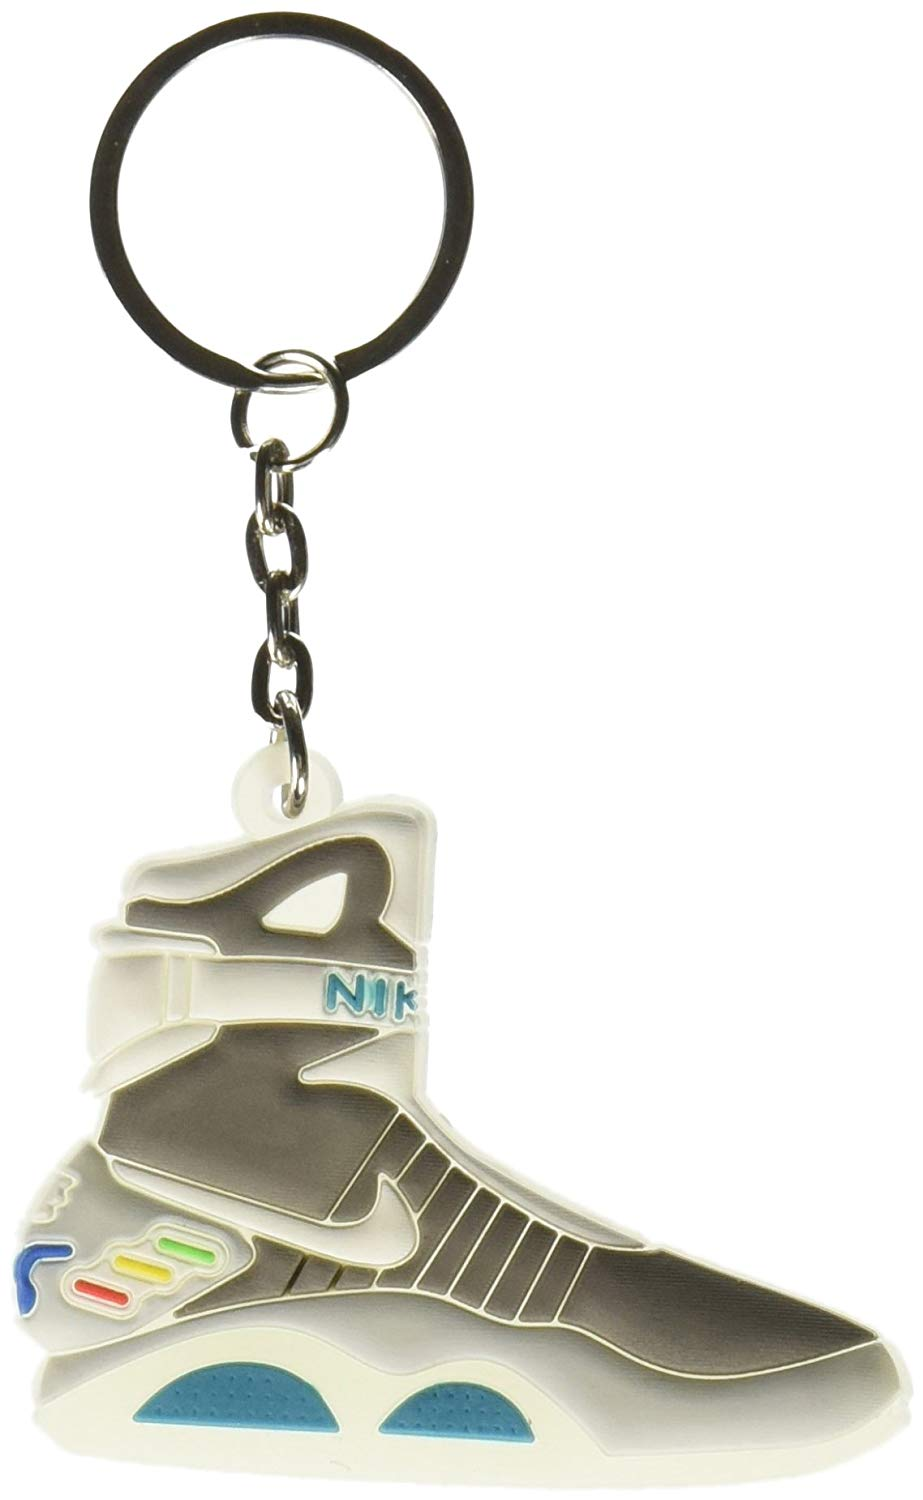 Air Mag Keychain - Glow in the Dark - Back to the Future Keychain - Sneaker Keychain